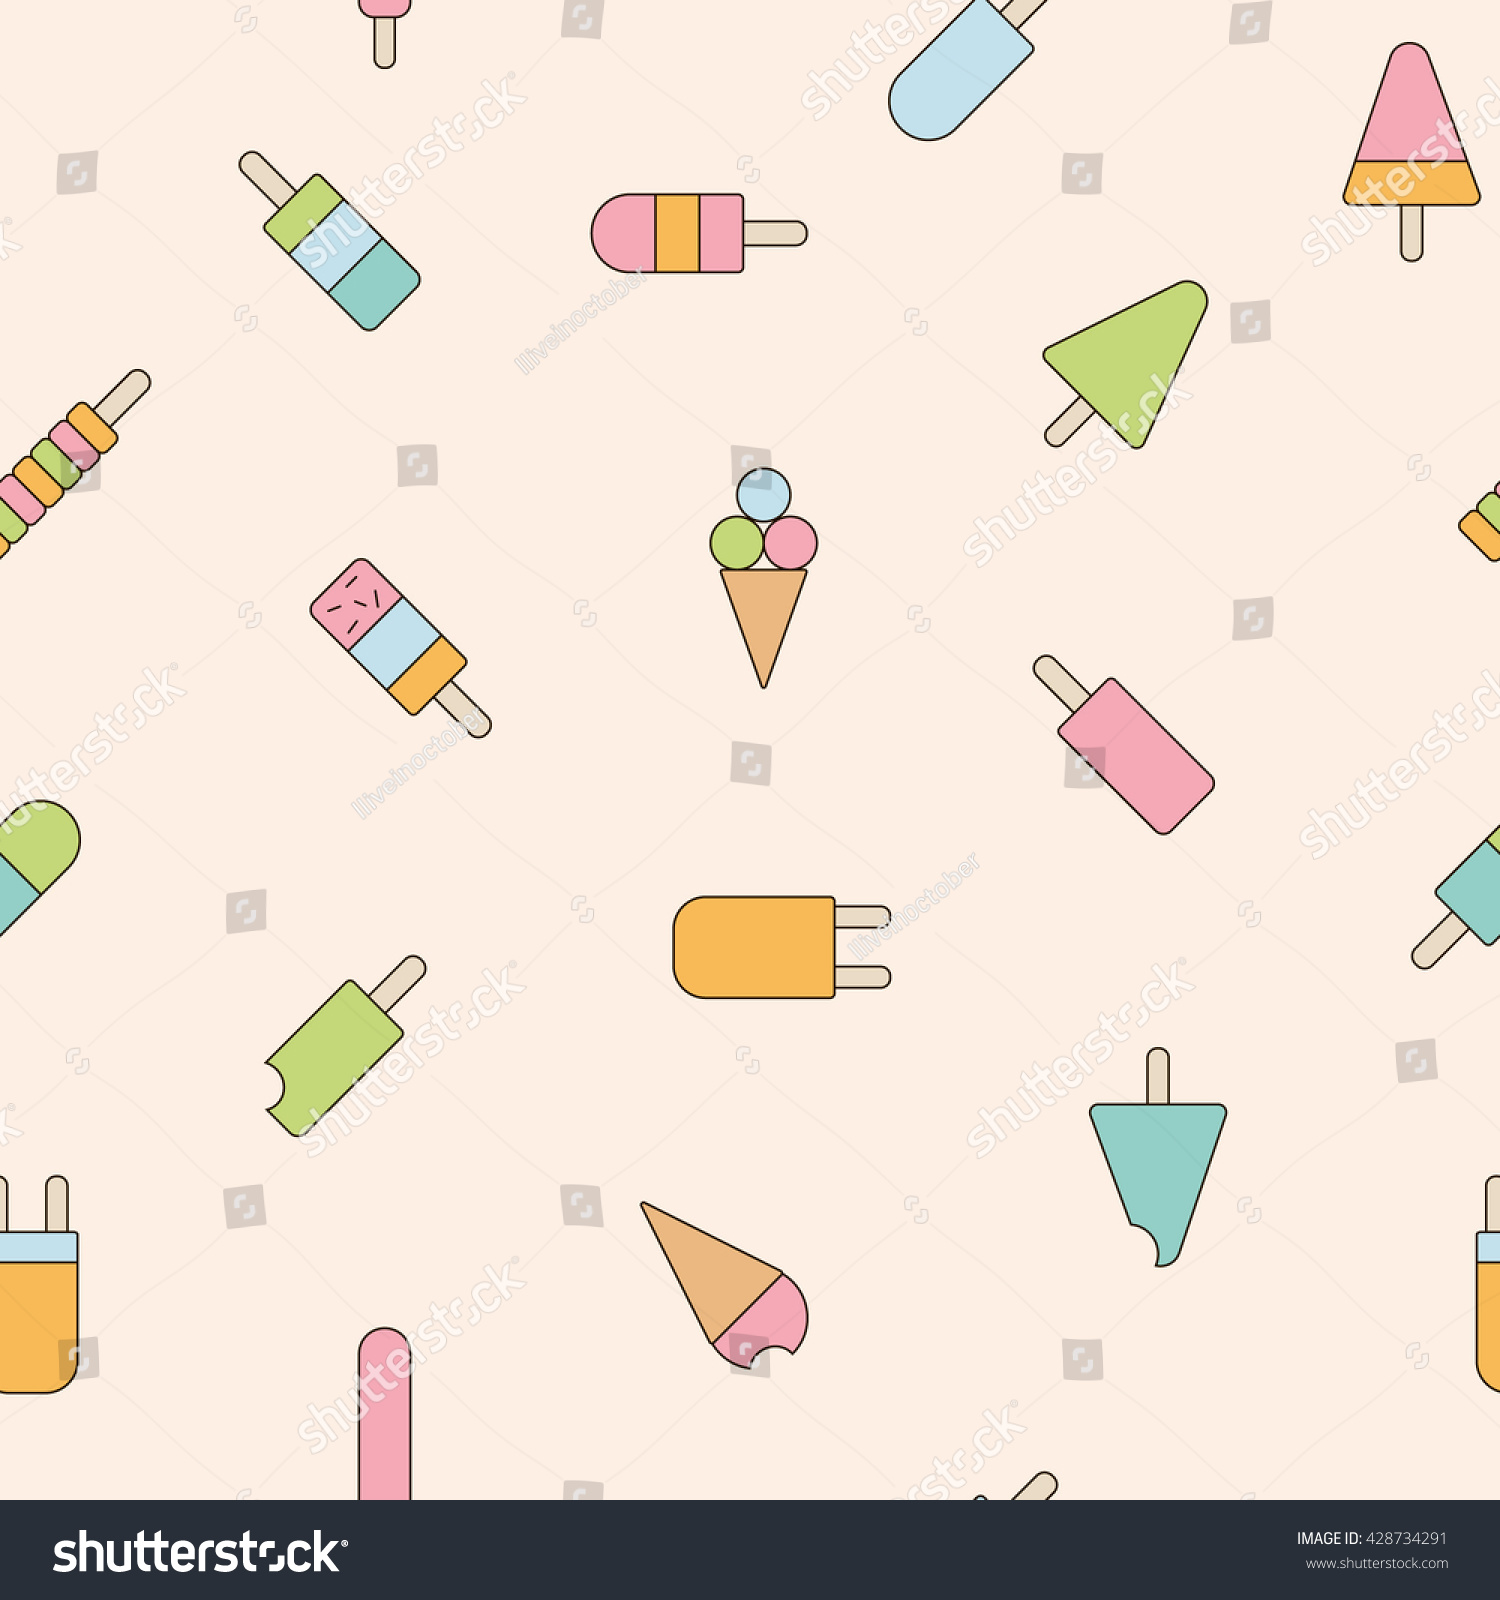 Sweet Ice Cream Flat Colorful Seamless Pattern Vector: Ice Cream Icons Seamless Pattern Vector Stock Vector